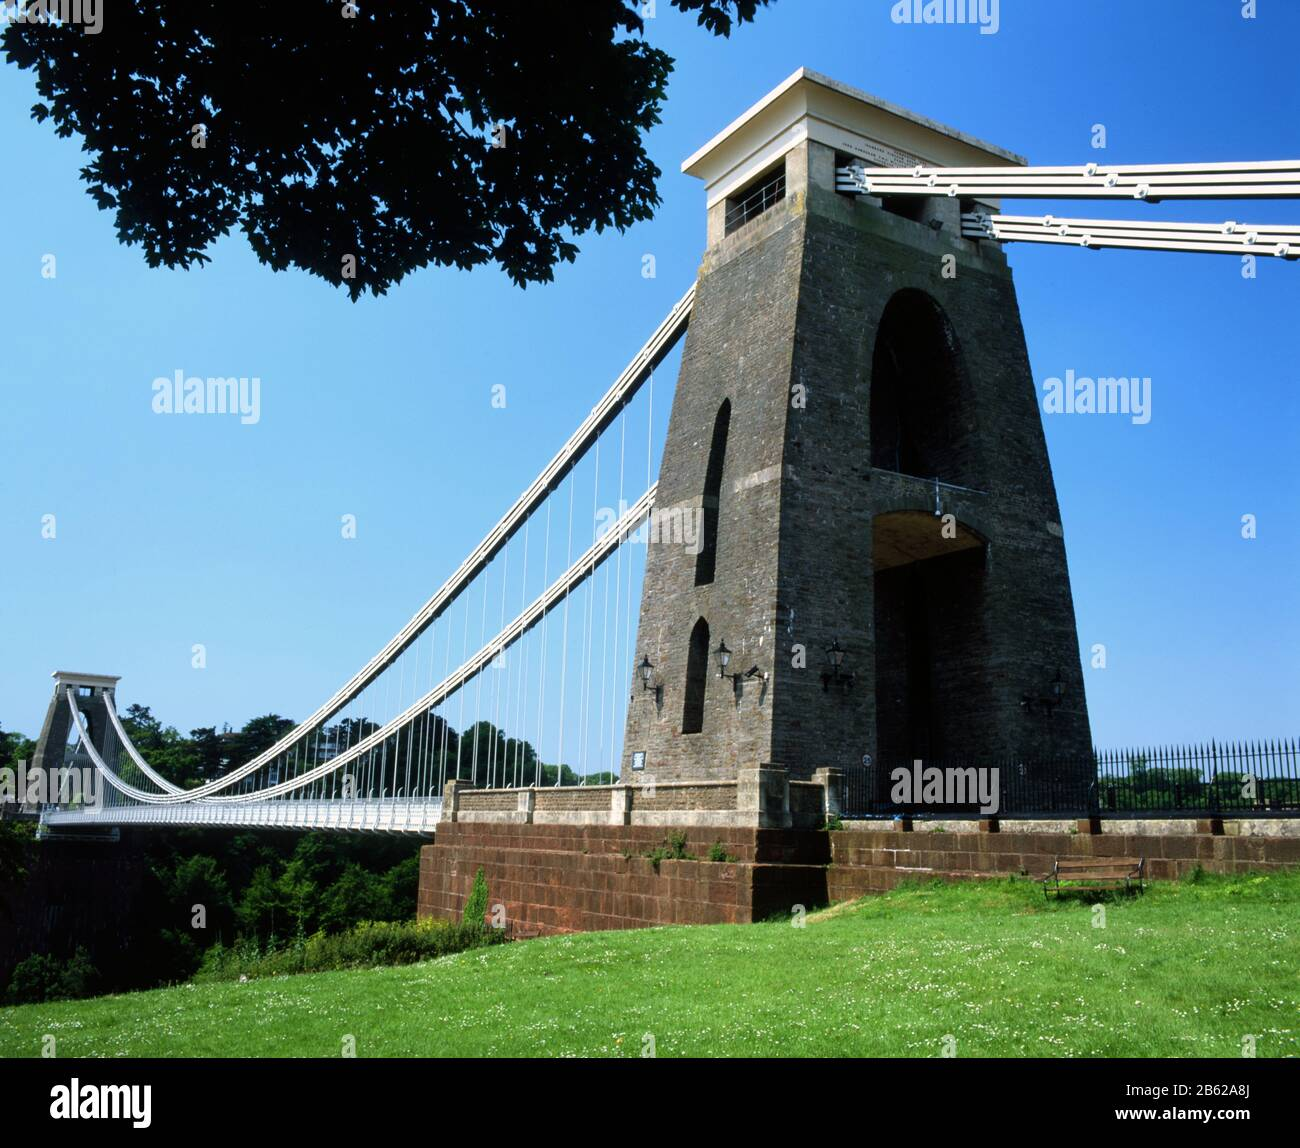 Clifton Suspnsion Bridge, desinged by Brunel. Clifton Downs, Bristol. Stock Photo